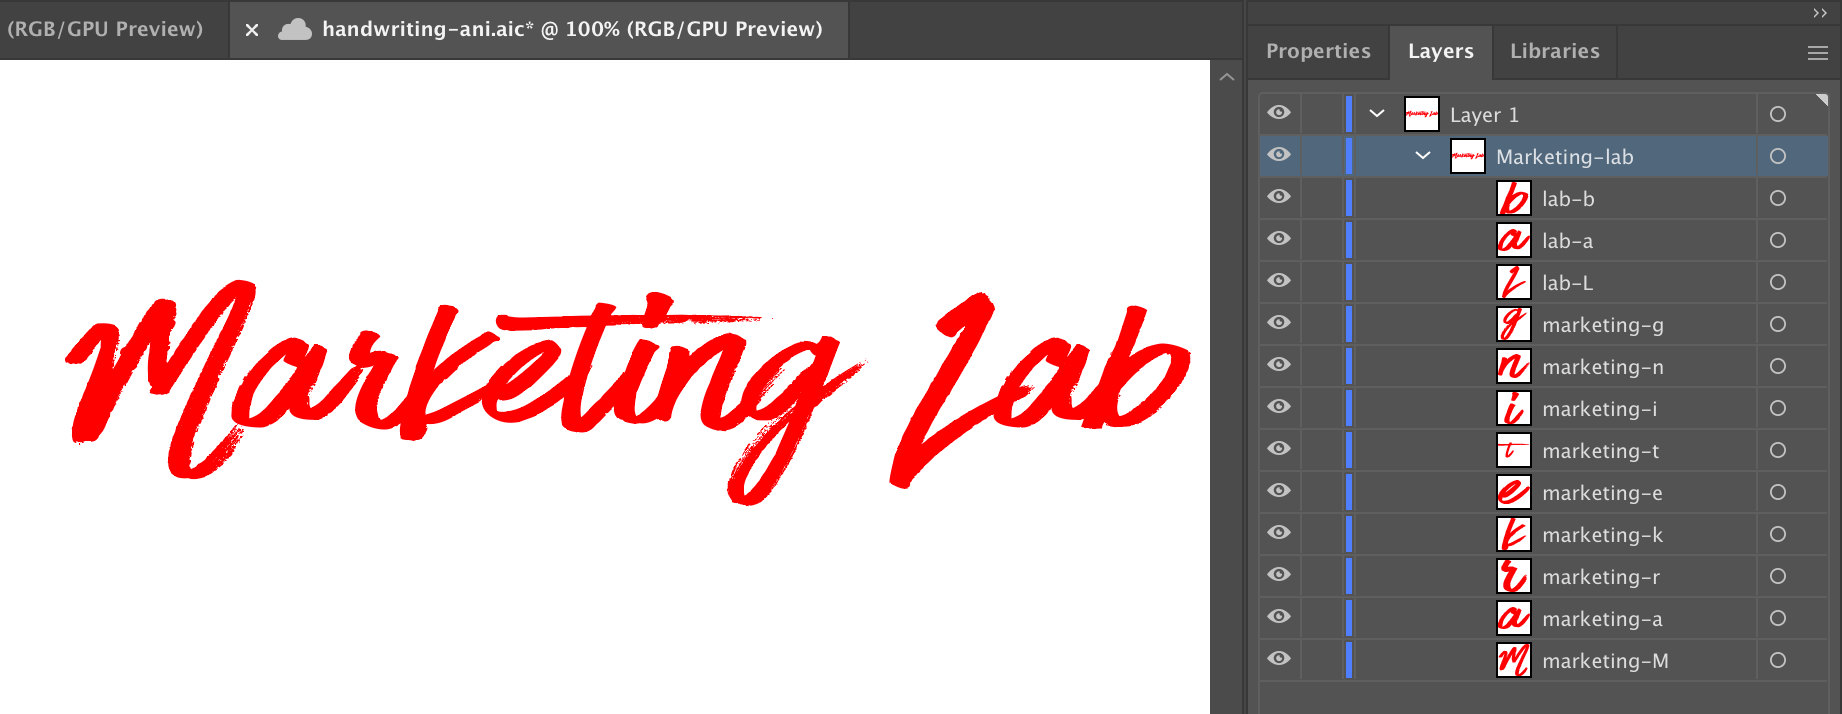 Showing the Illustrator layers of the letters with proper naming.